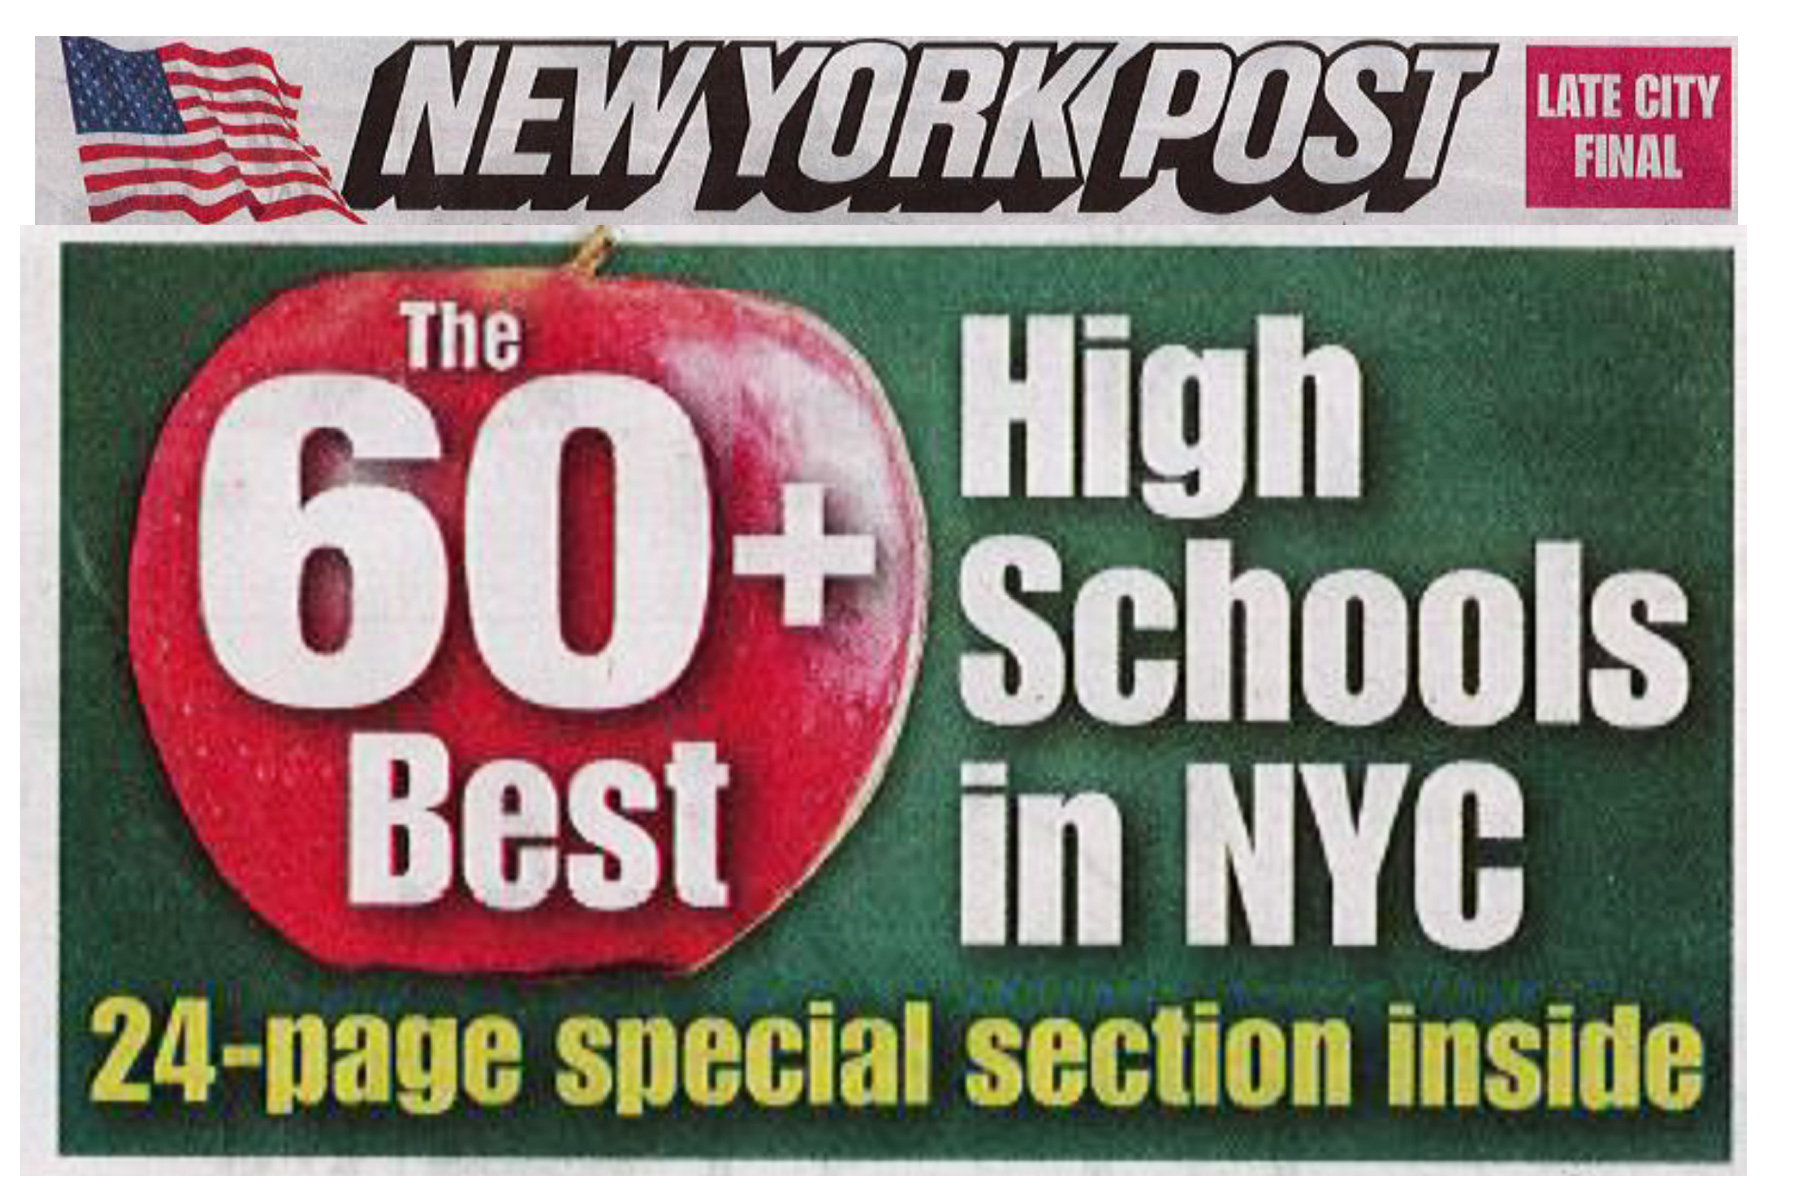 NY Post lists SMS High School as one of the Best High Schools in NYC!